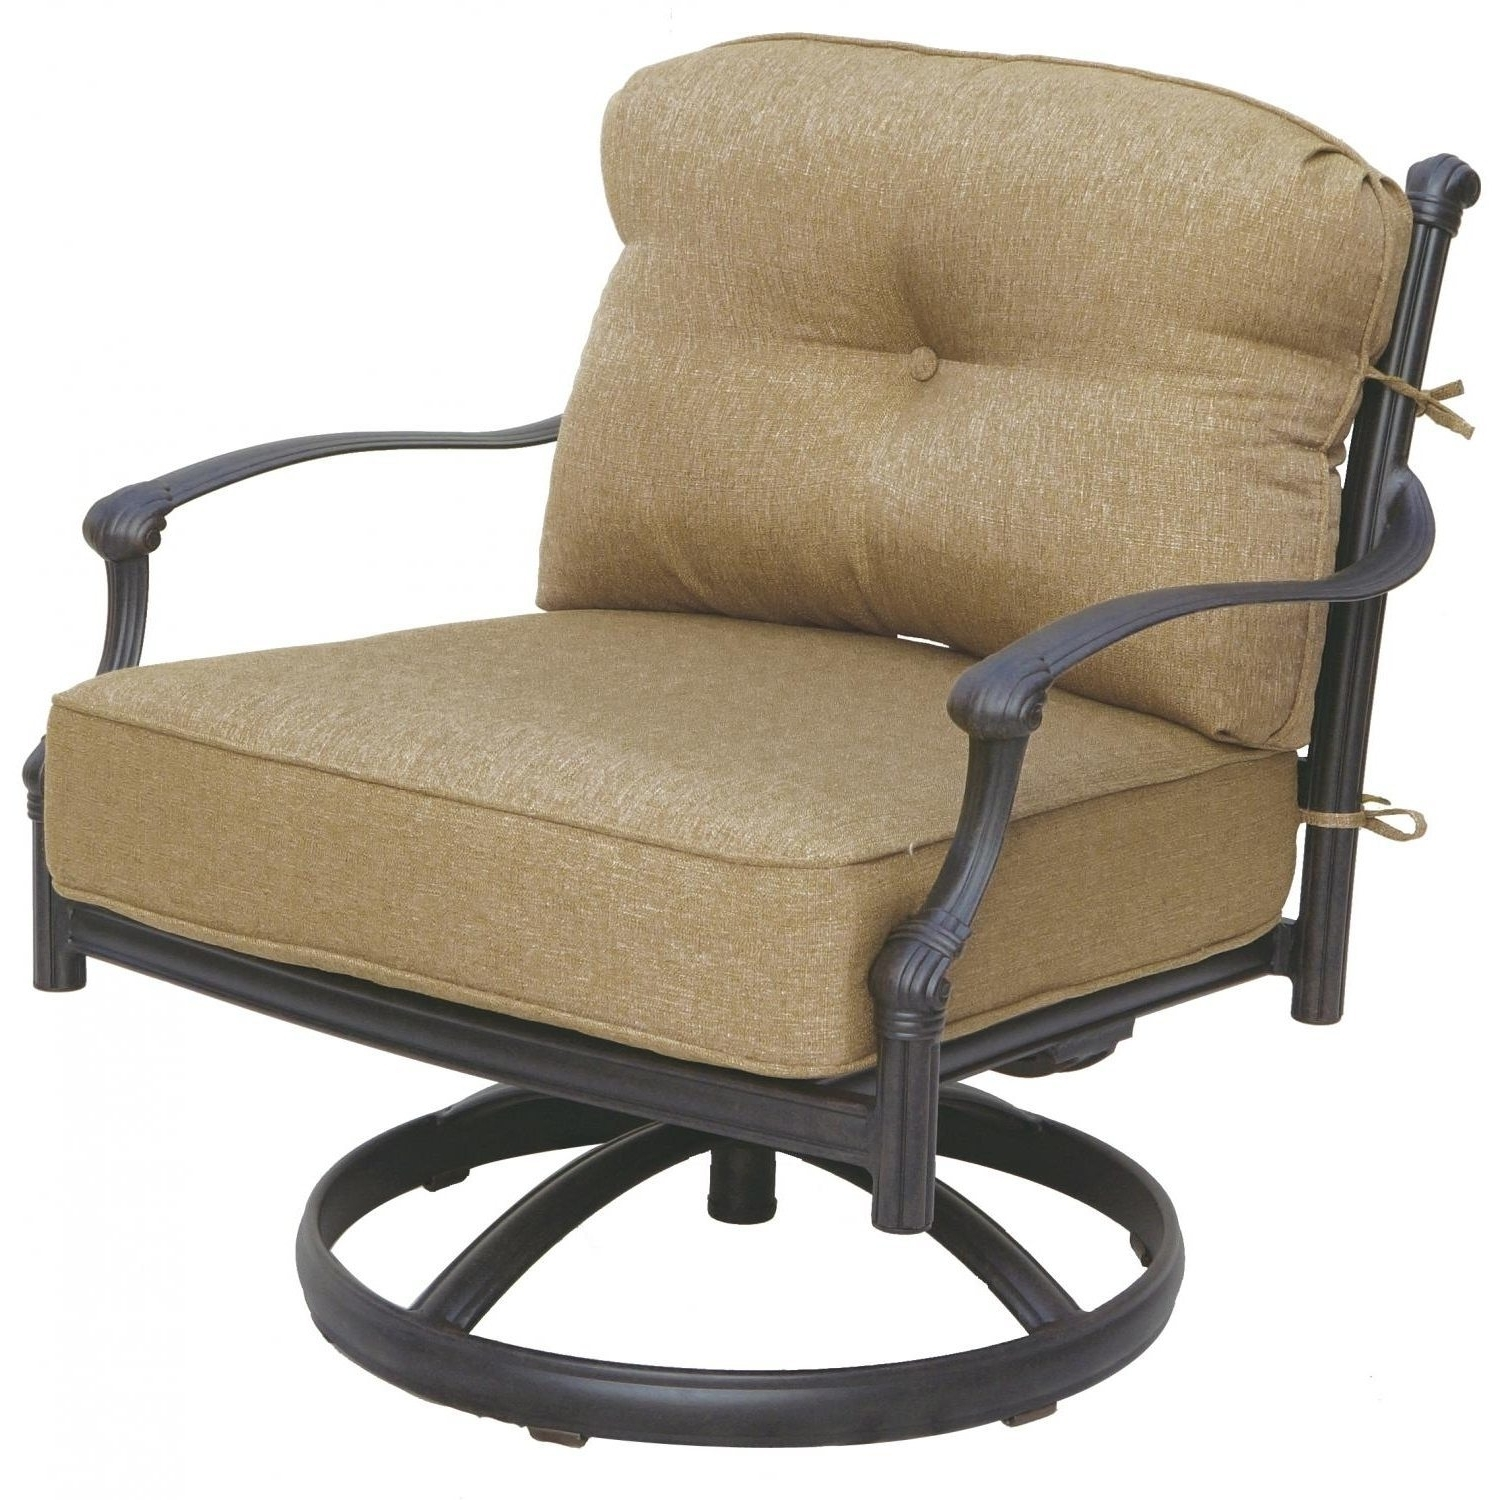 Most Recently Released Rocking Chairs At Target With Regard To Livingroom : Extraordinary Swivel Patio Chairs Target Rocker Home (View 16 of 20)